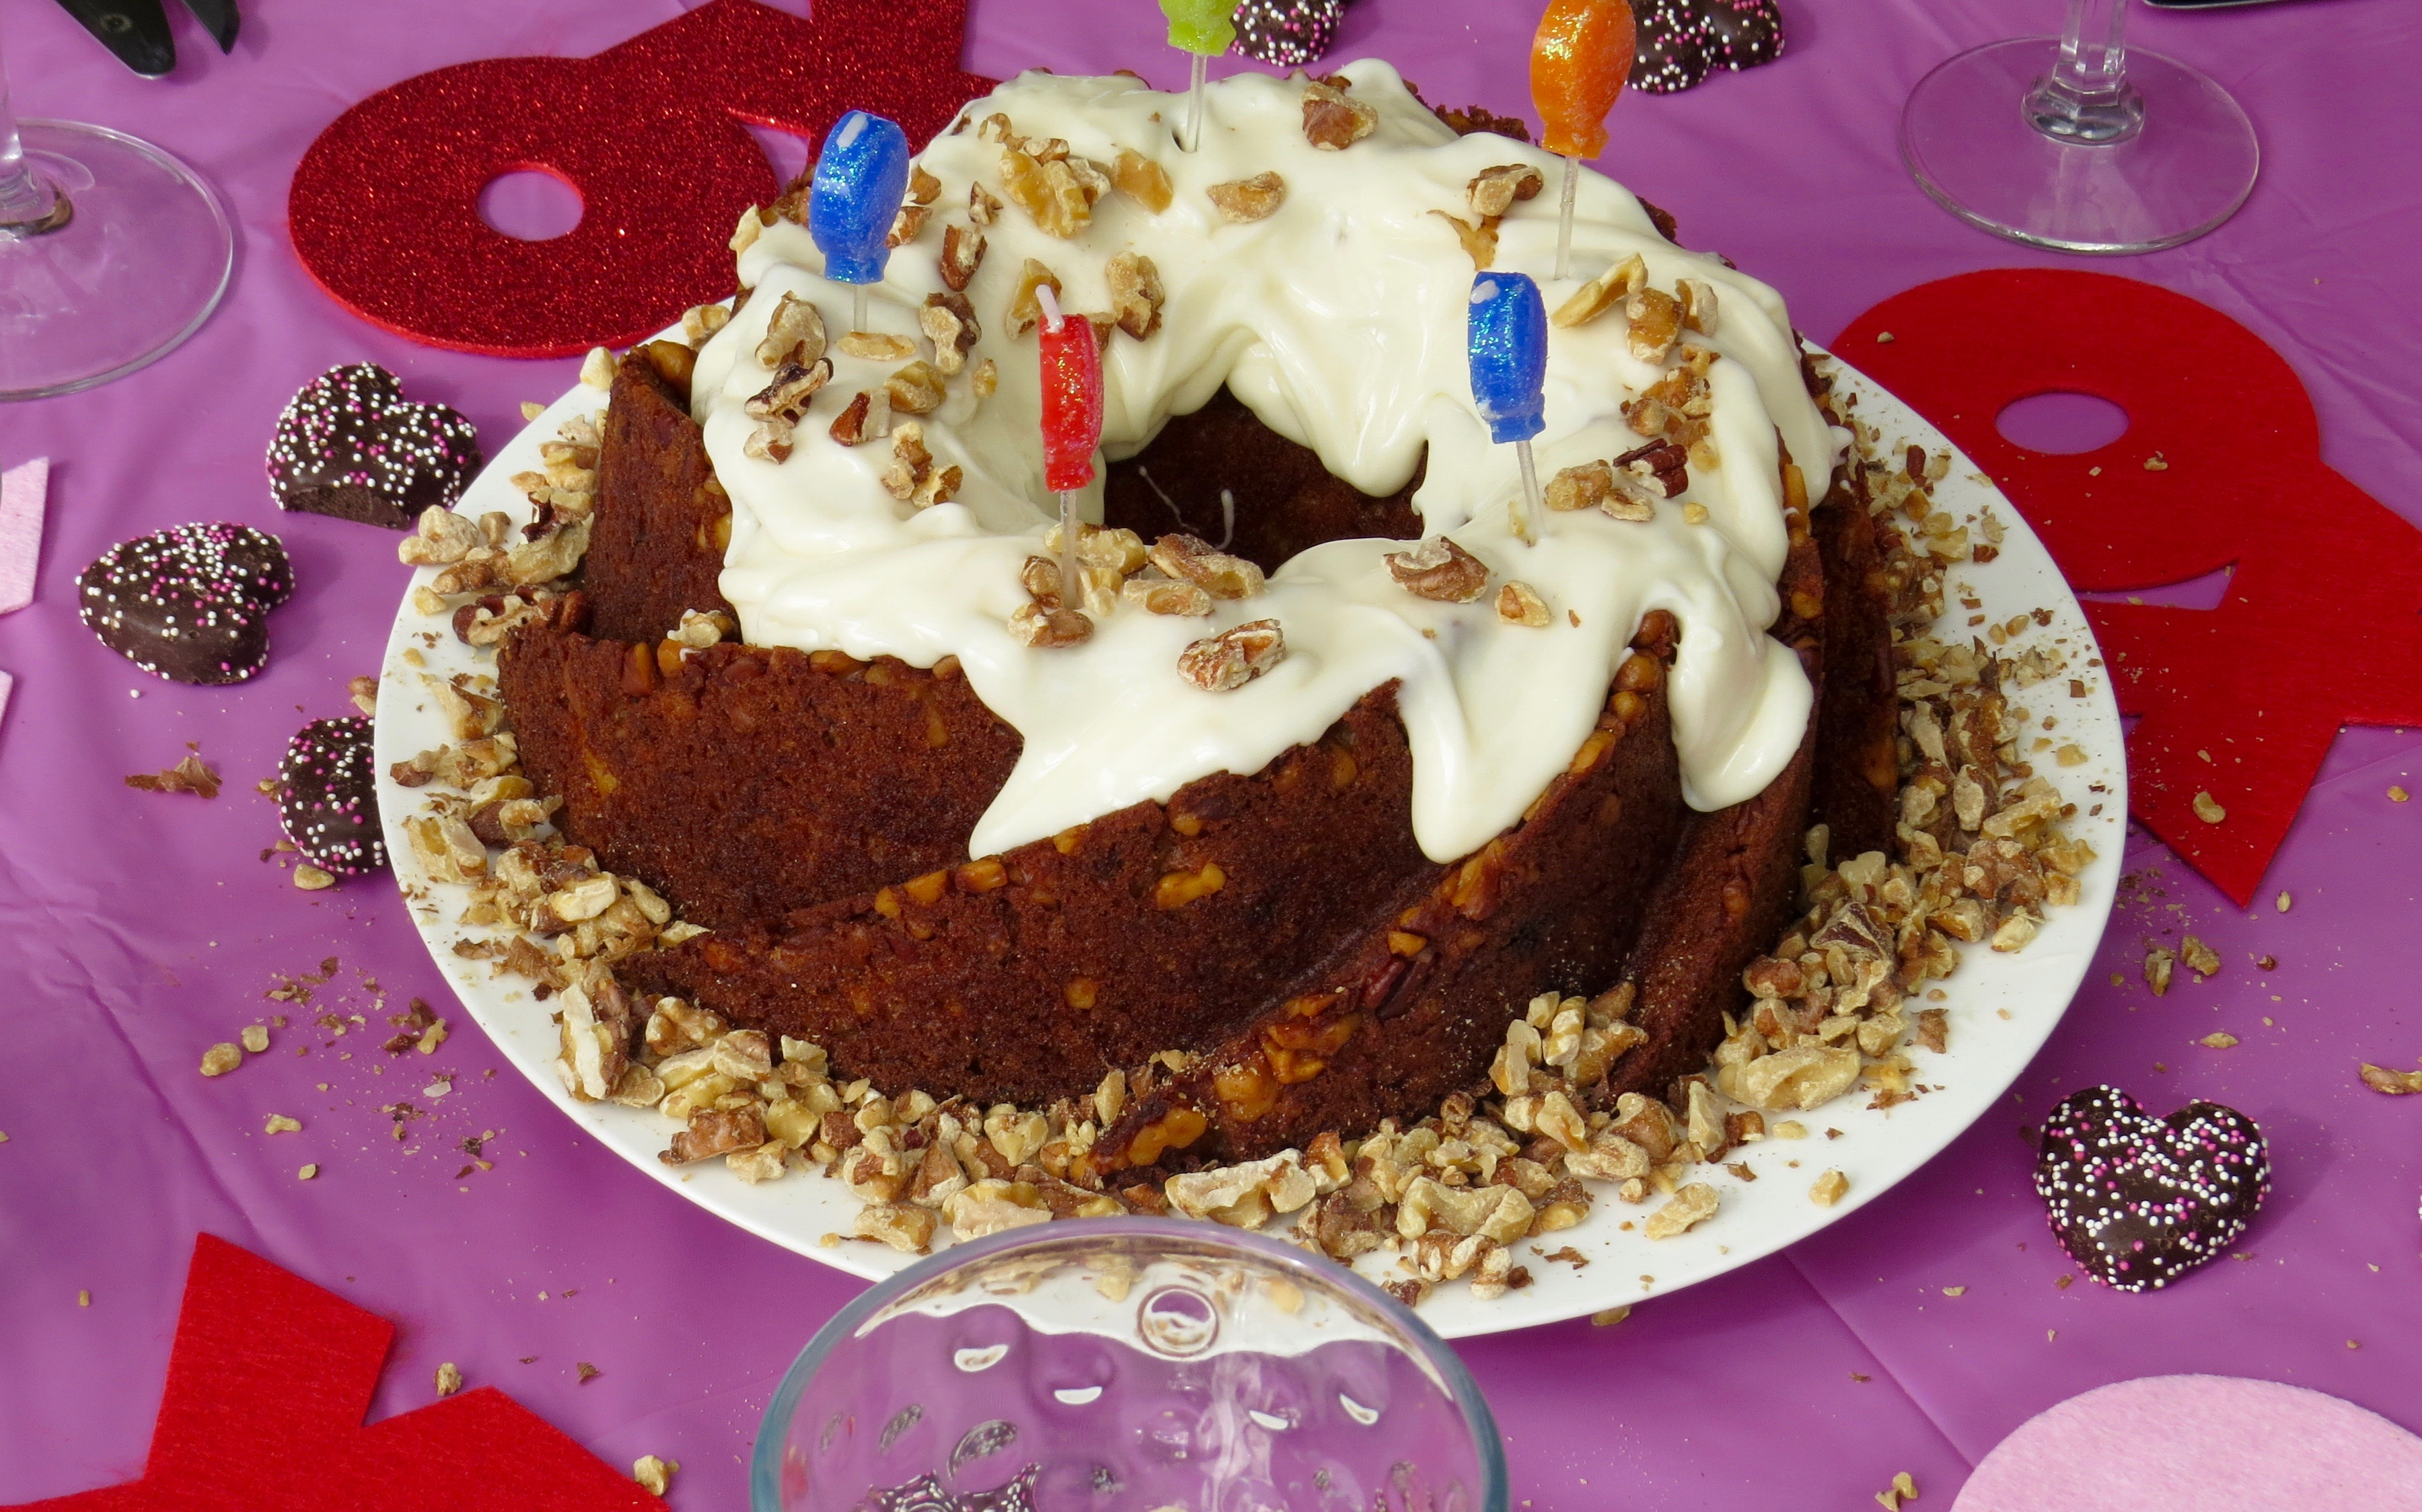 Hummingbird Cake, a  traditional southern classic